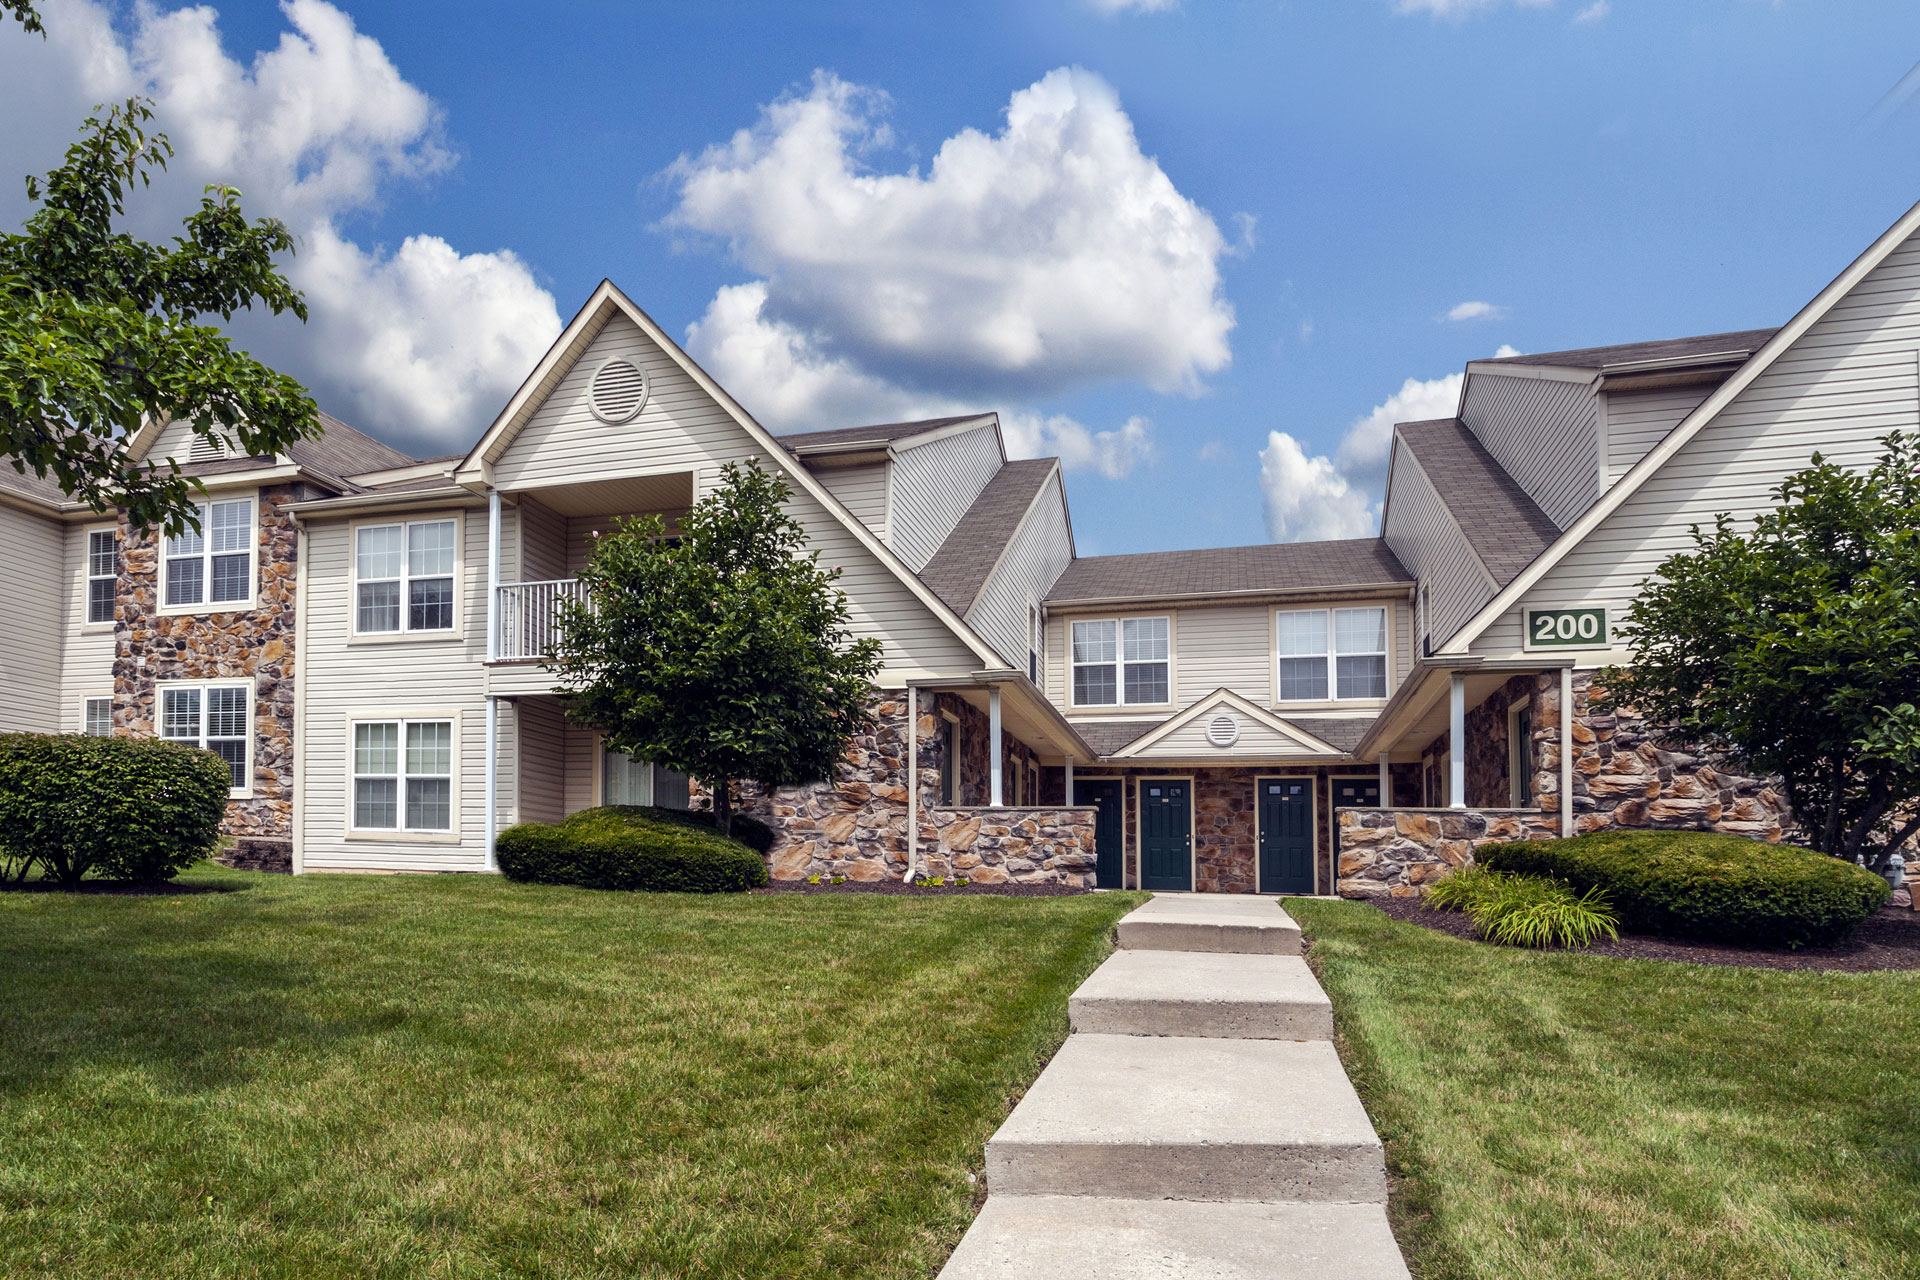 Walnut Crossing Apartments in Royersford, PA